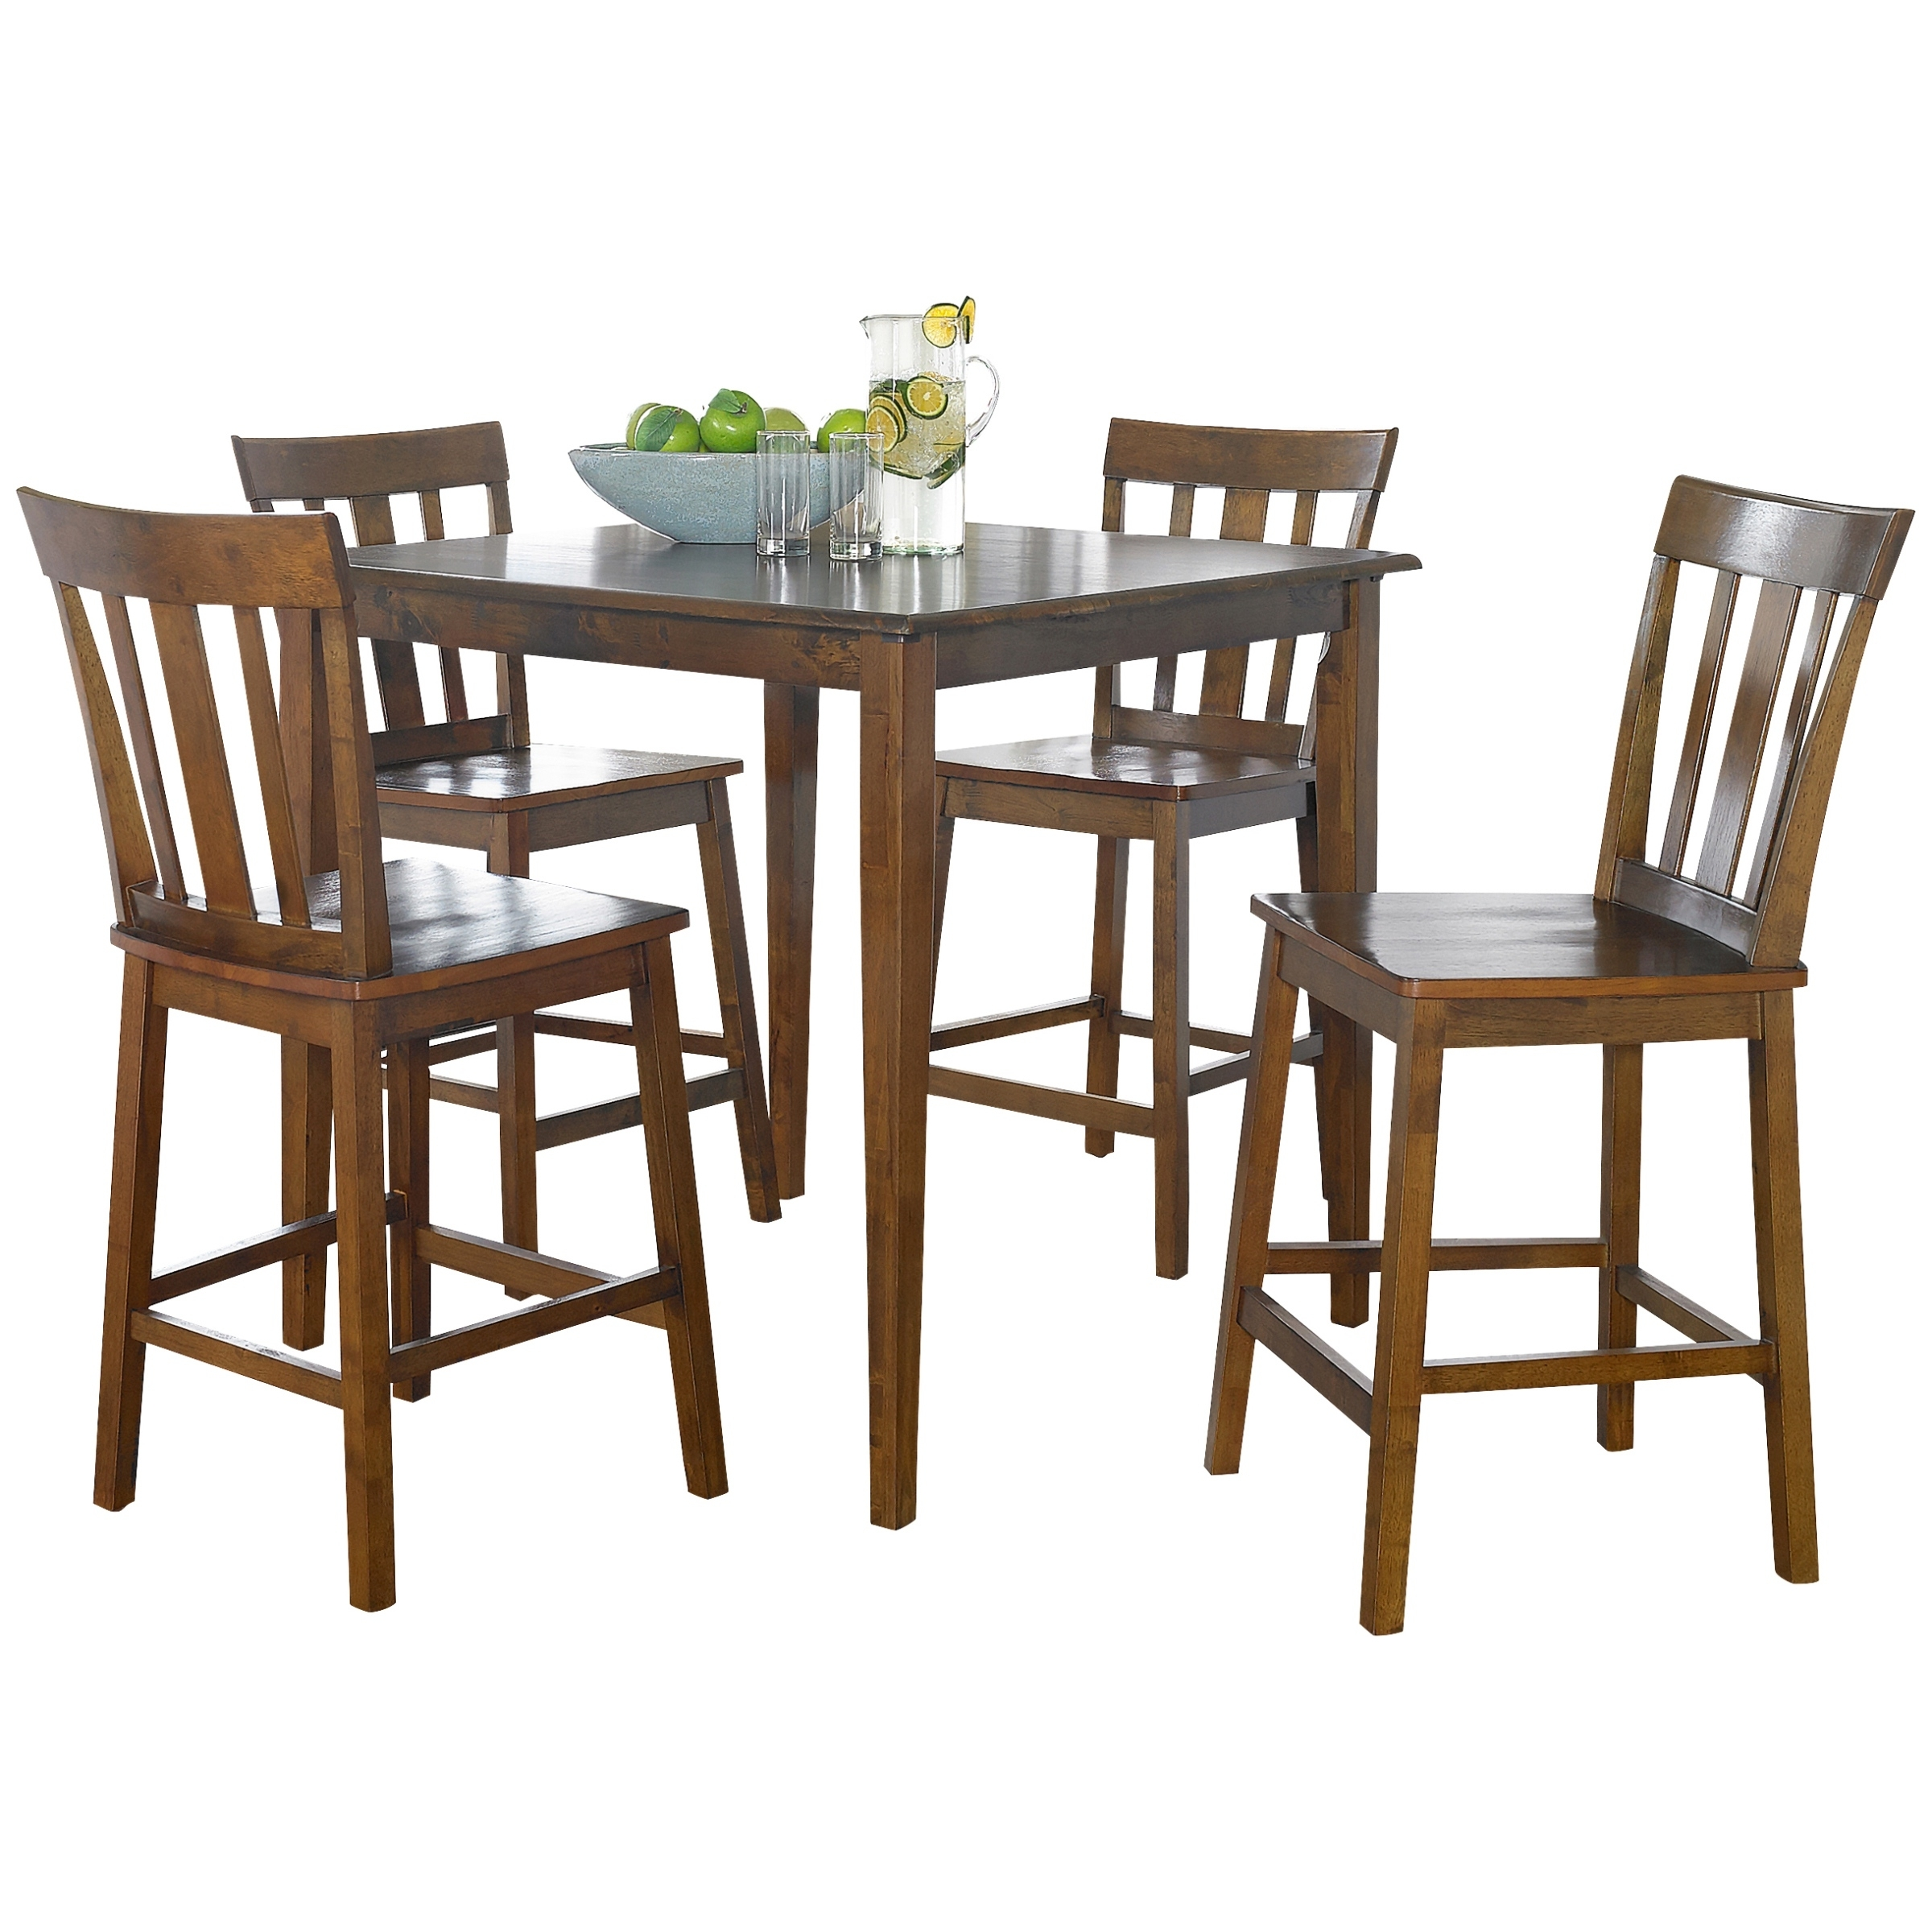 Newest Mainstays 5 Piece Mission Counter Height Dining Set – Walmart For Pierce 5 Piece Counter Sets (Gallery 13 of 25)